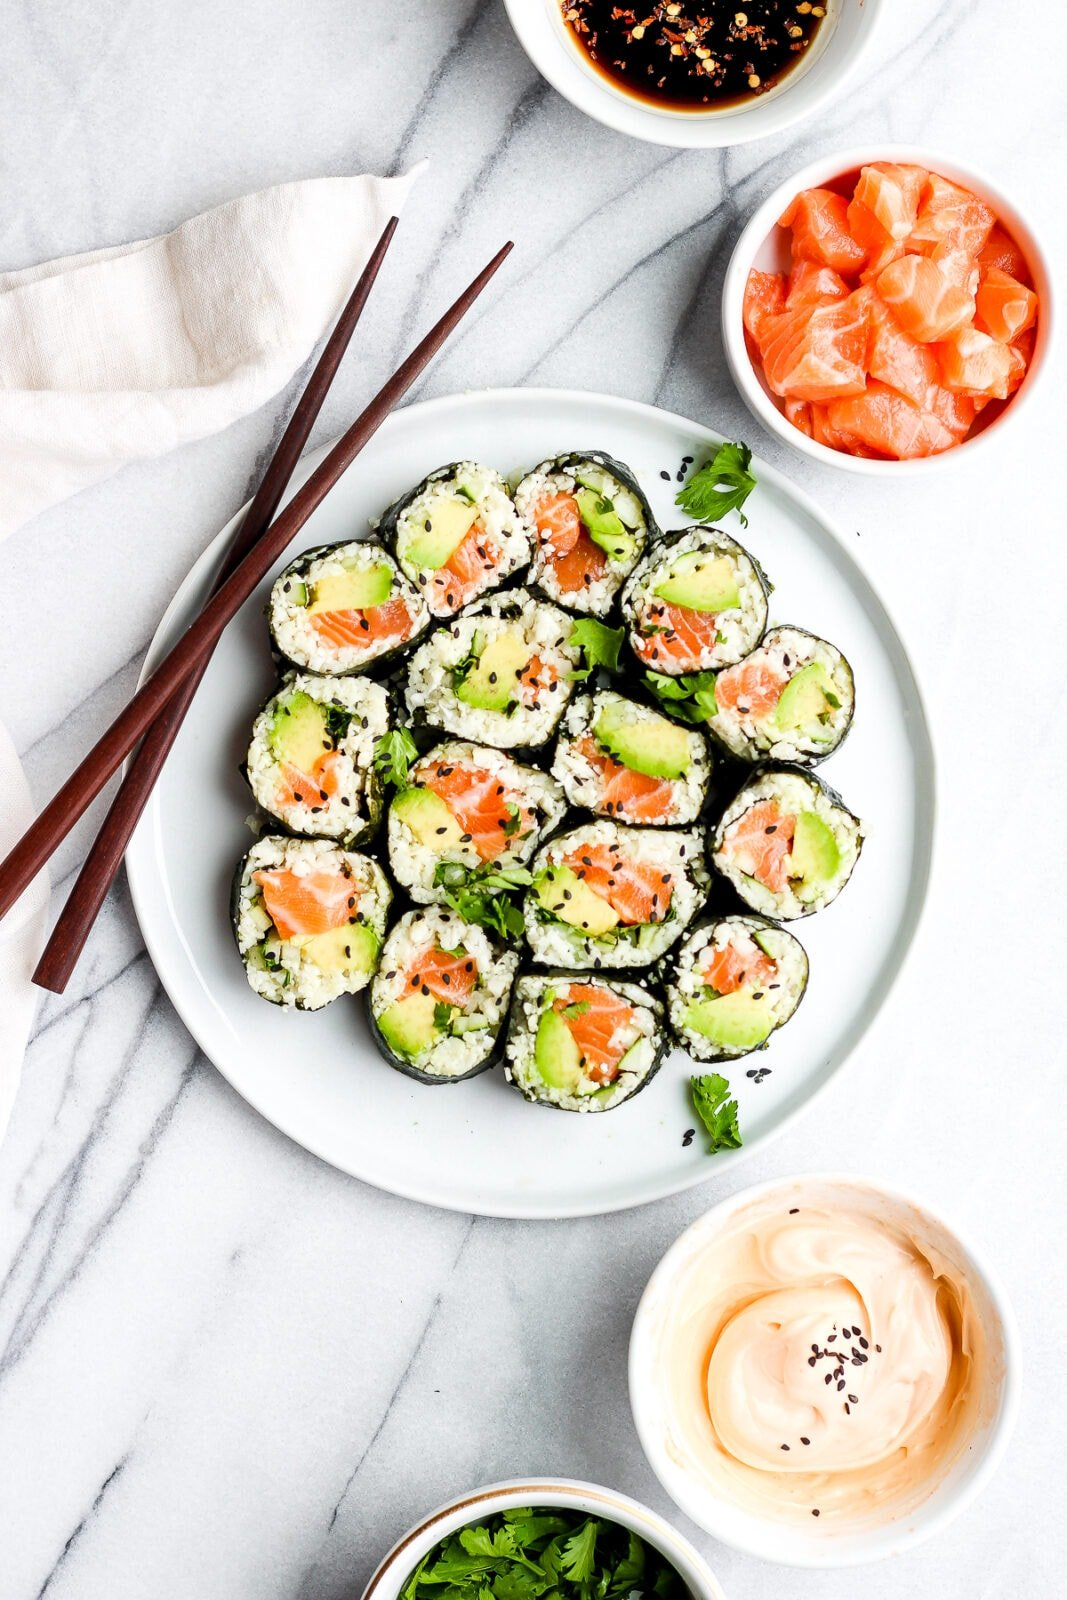 Spicy Salmon and Avocado Cauliflower Rice Sushi Roll on a plate with chopsticks.